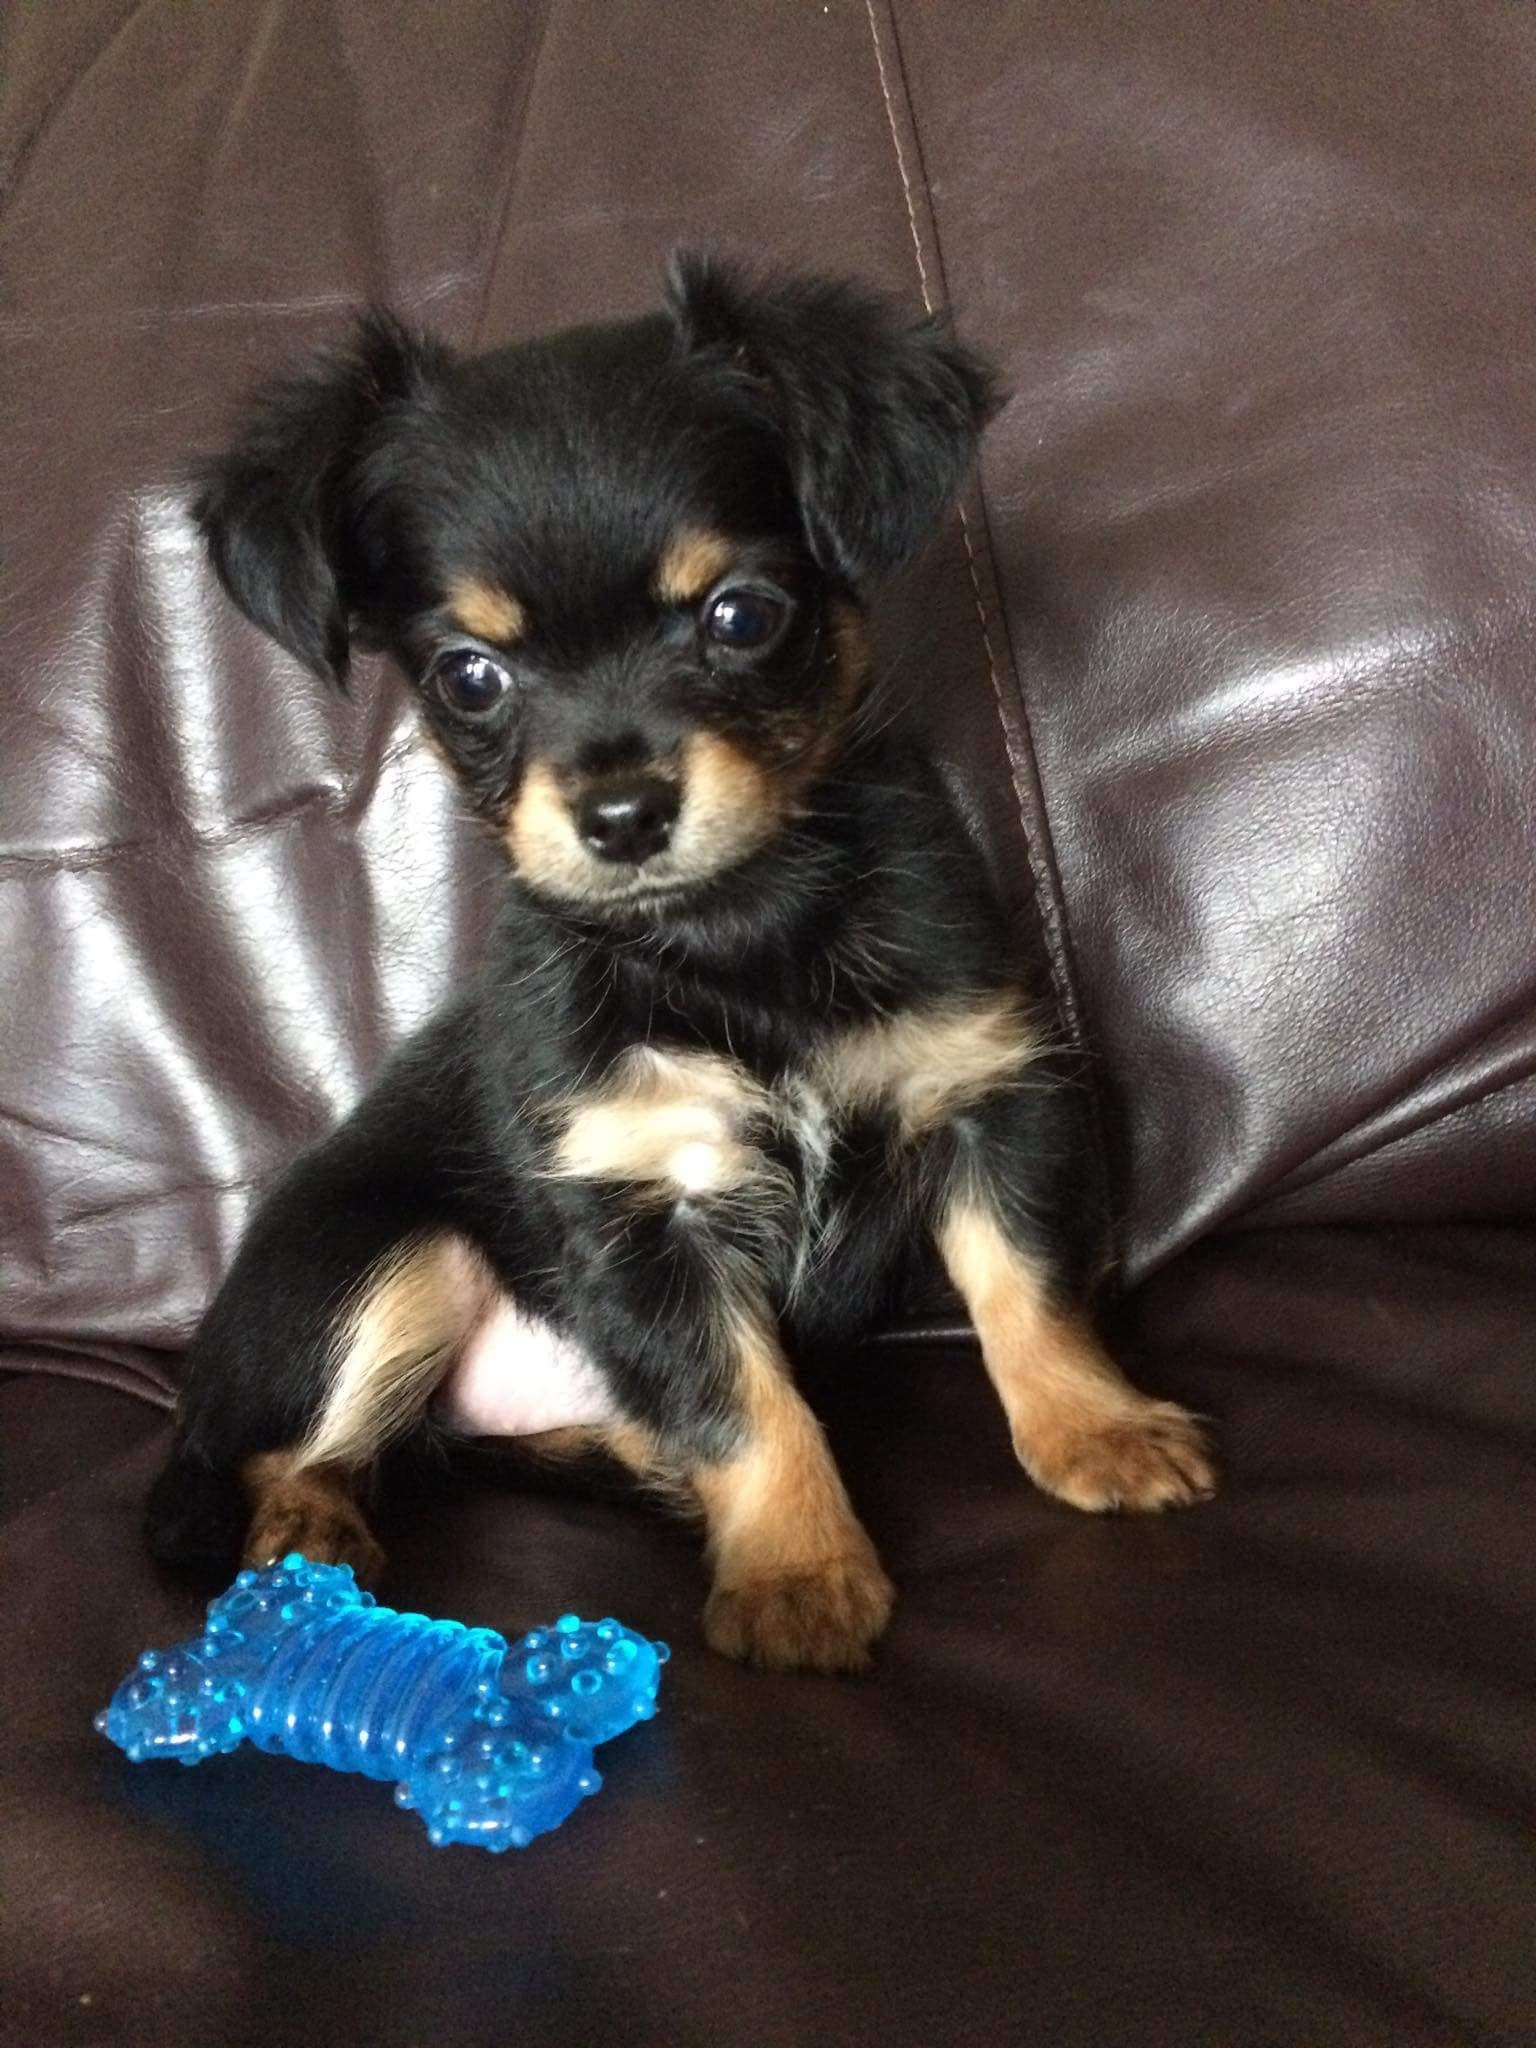 My Aunt S New Chorkie Chihuahua Yorkshire Terrier Cross Puppy